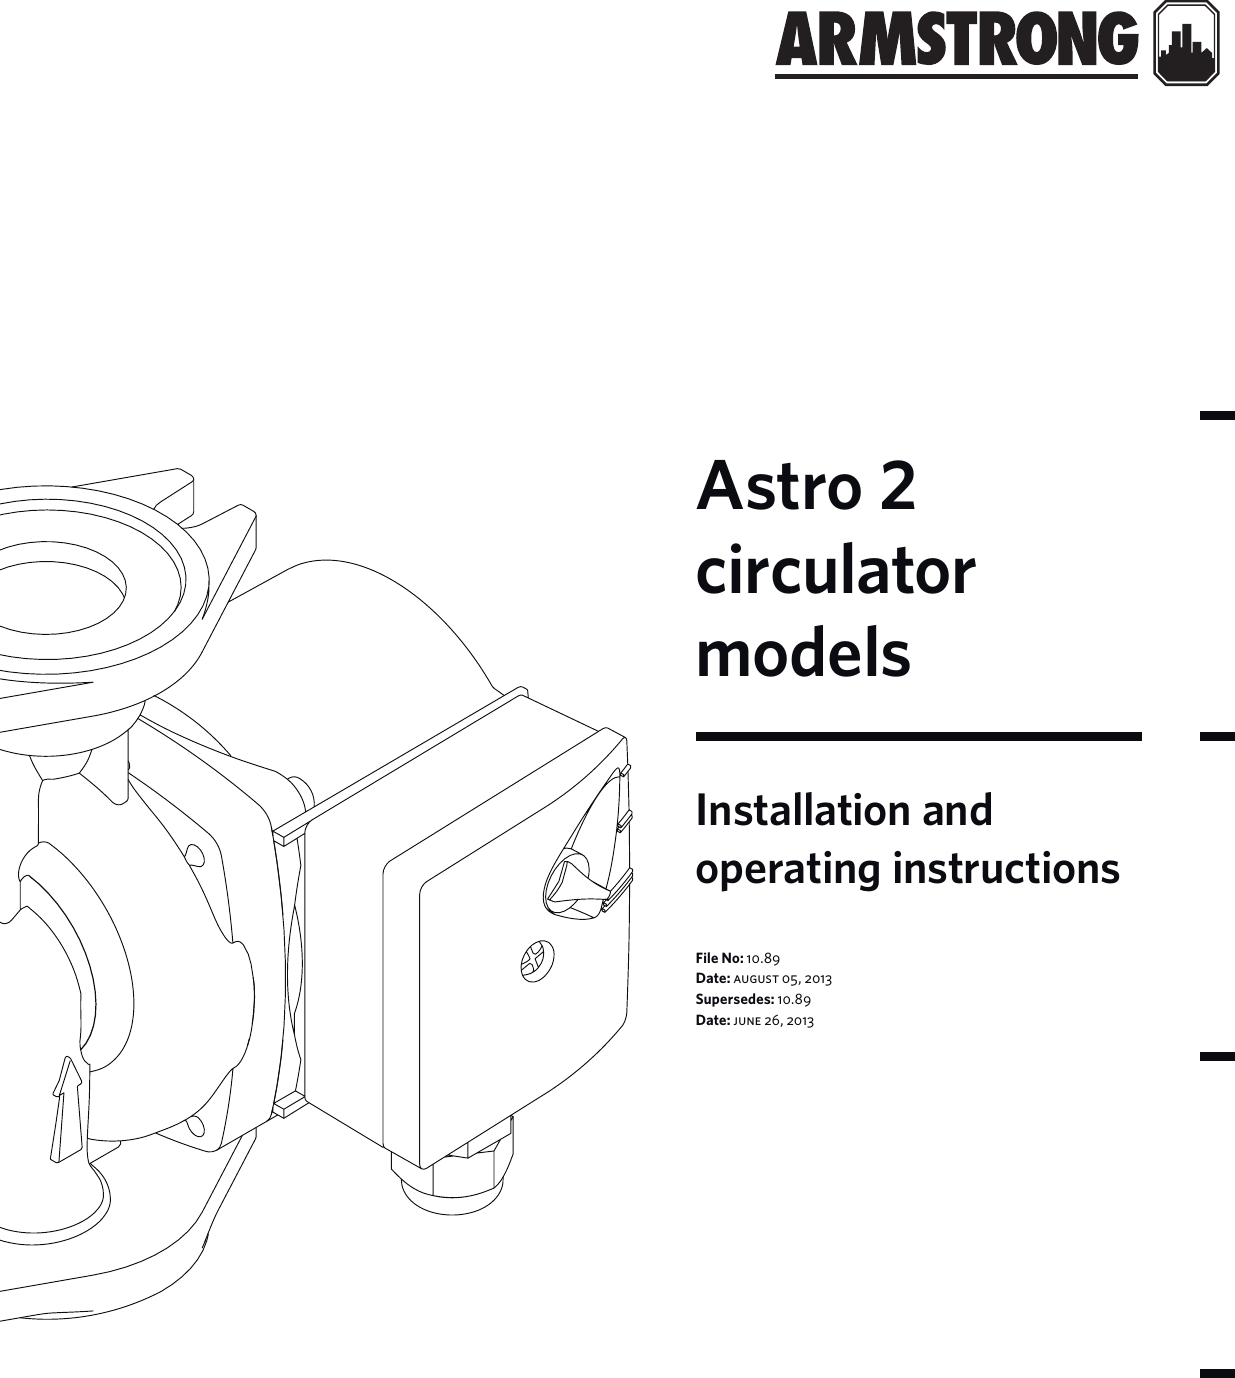 537643 3 Armstrong Astro 2 Series Circulator Installation Pump Motor Wiring Diagram Instructions User Manual